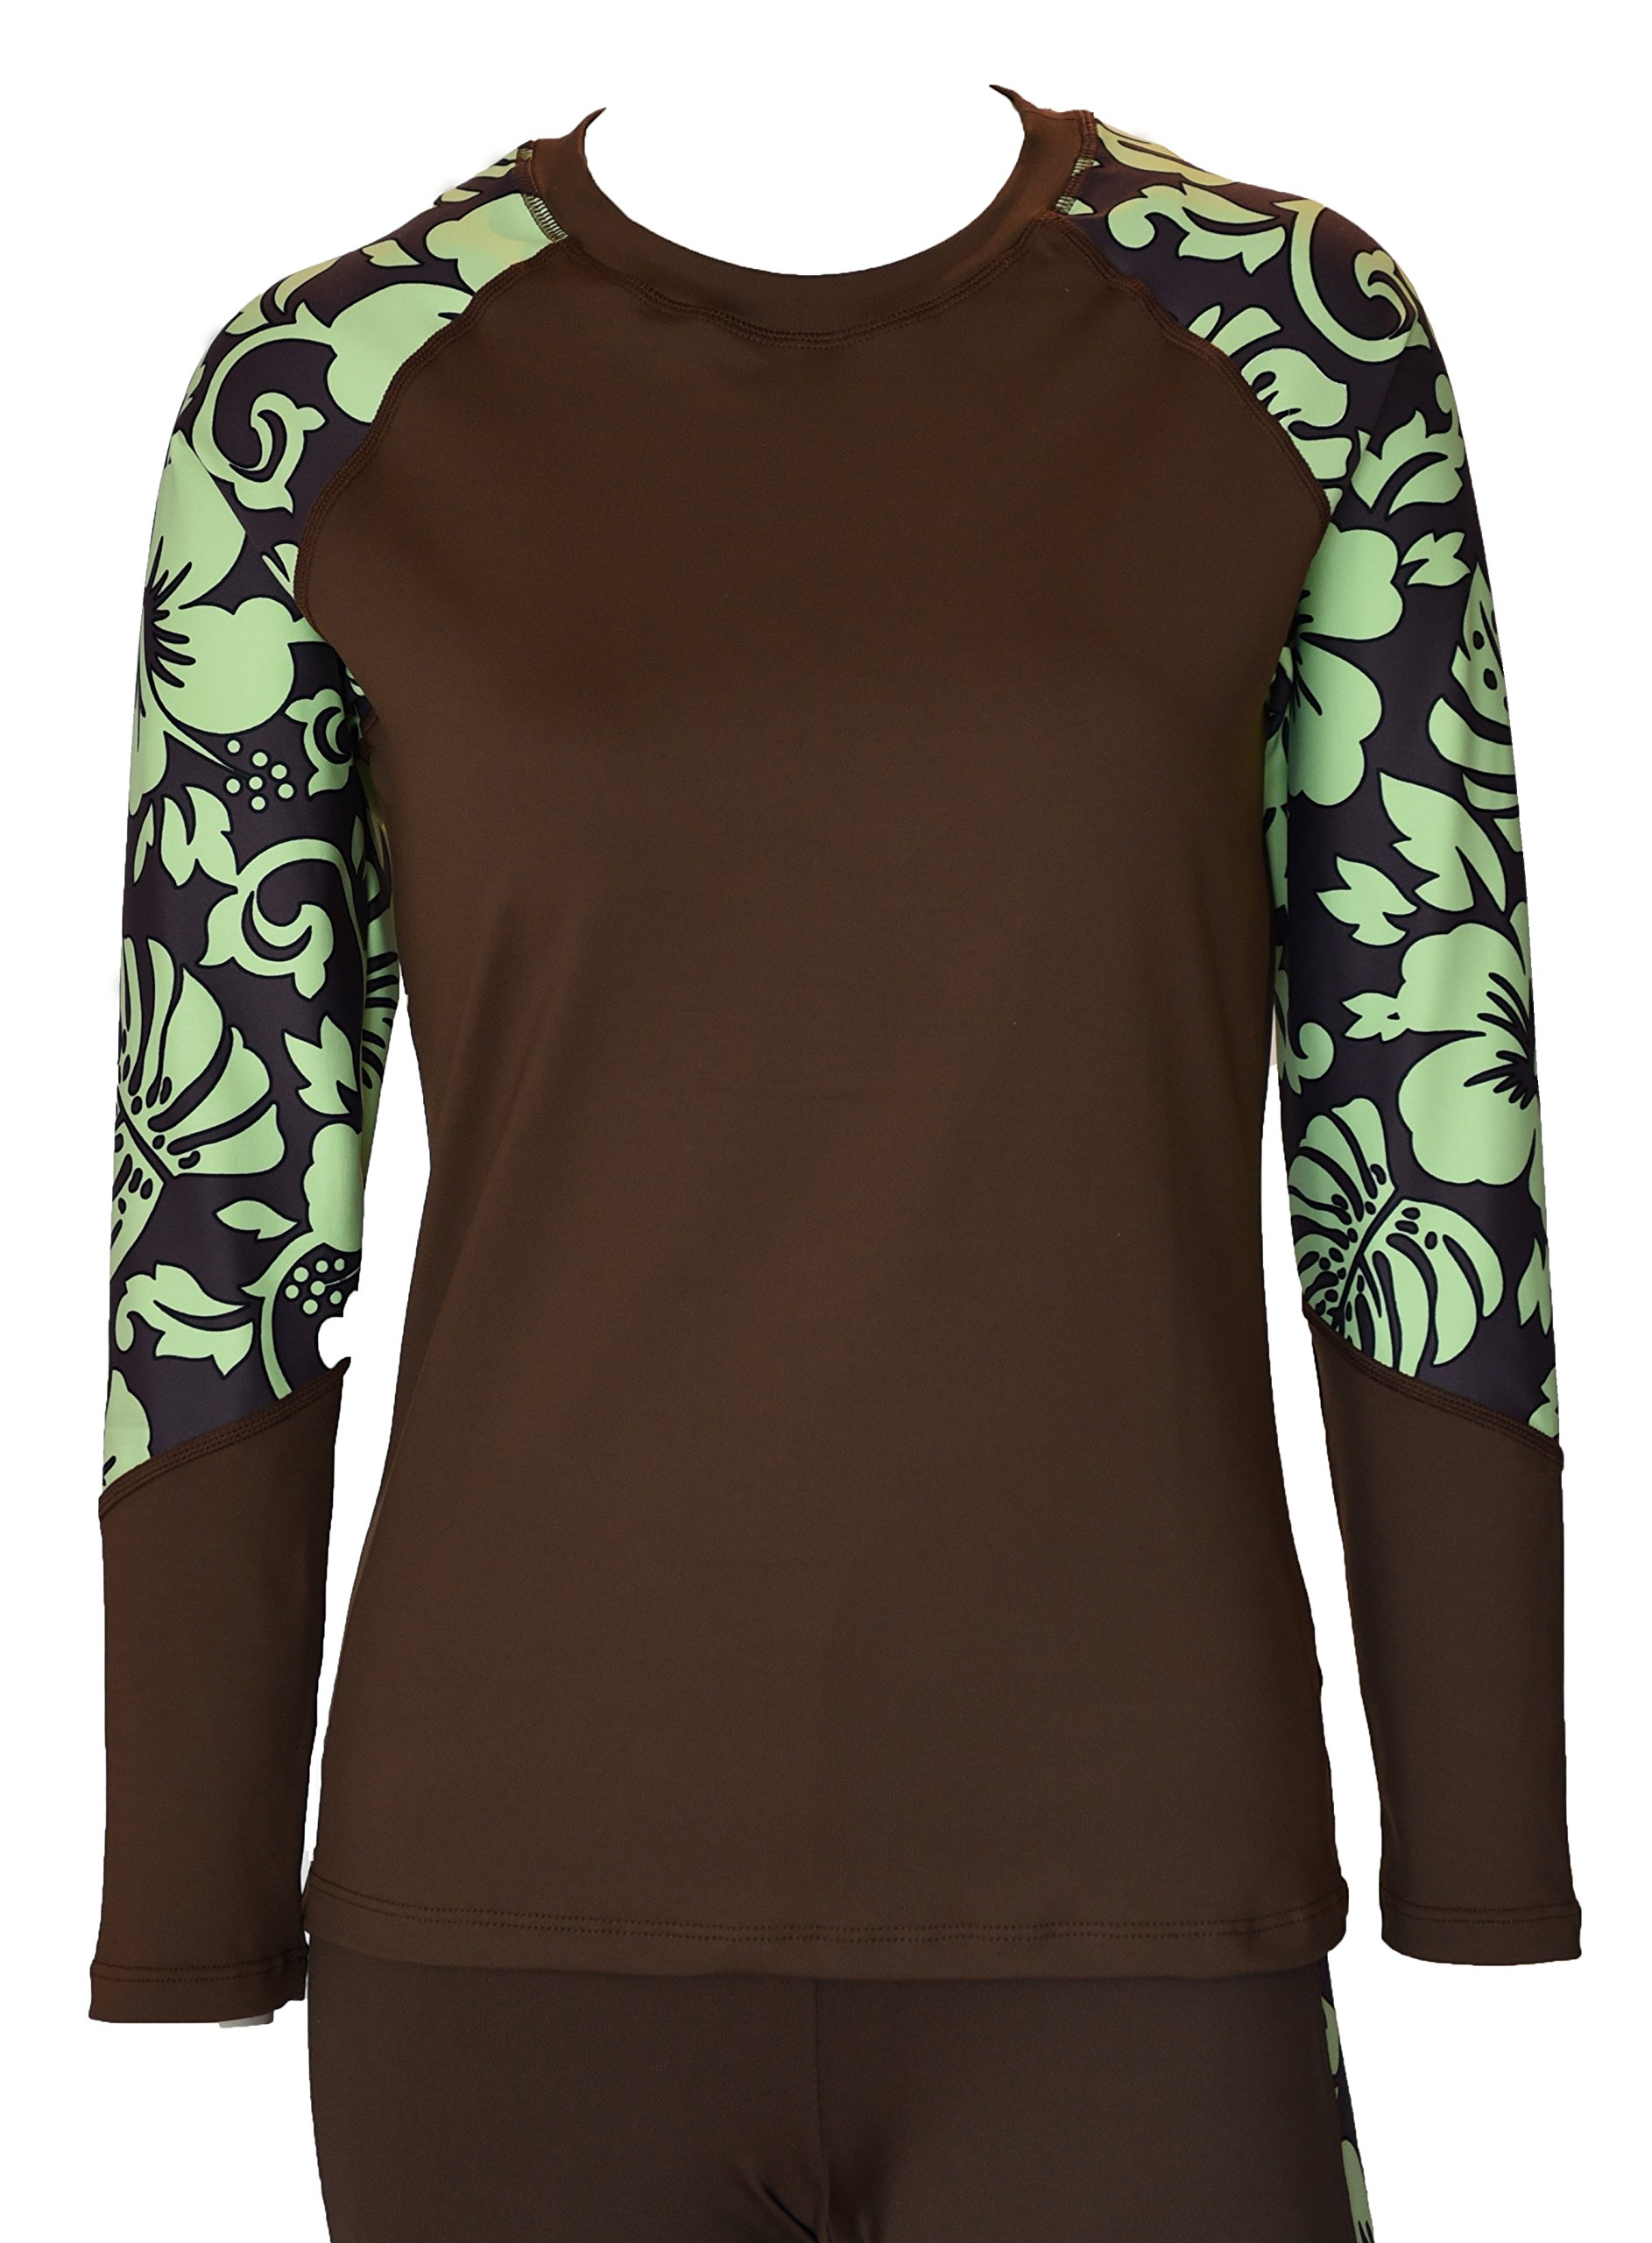 Private Island Hawaii UV Women Rash Guard Swim Yoga Active Workout Long Sleeve (M, BwG-RSRGT) by Private Island